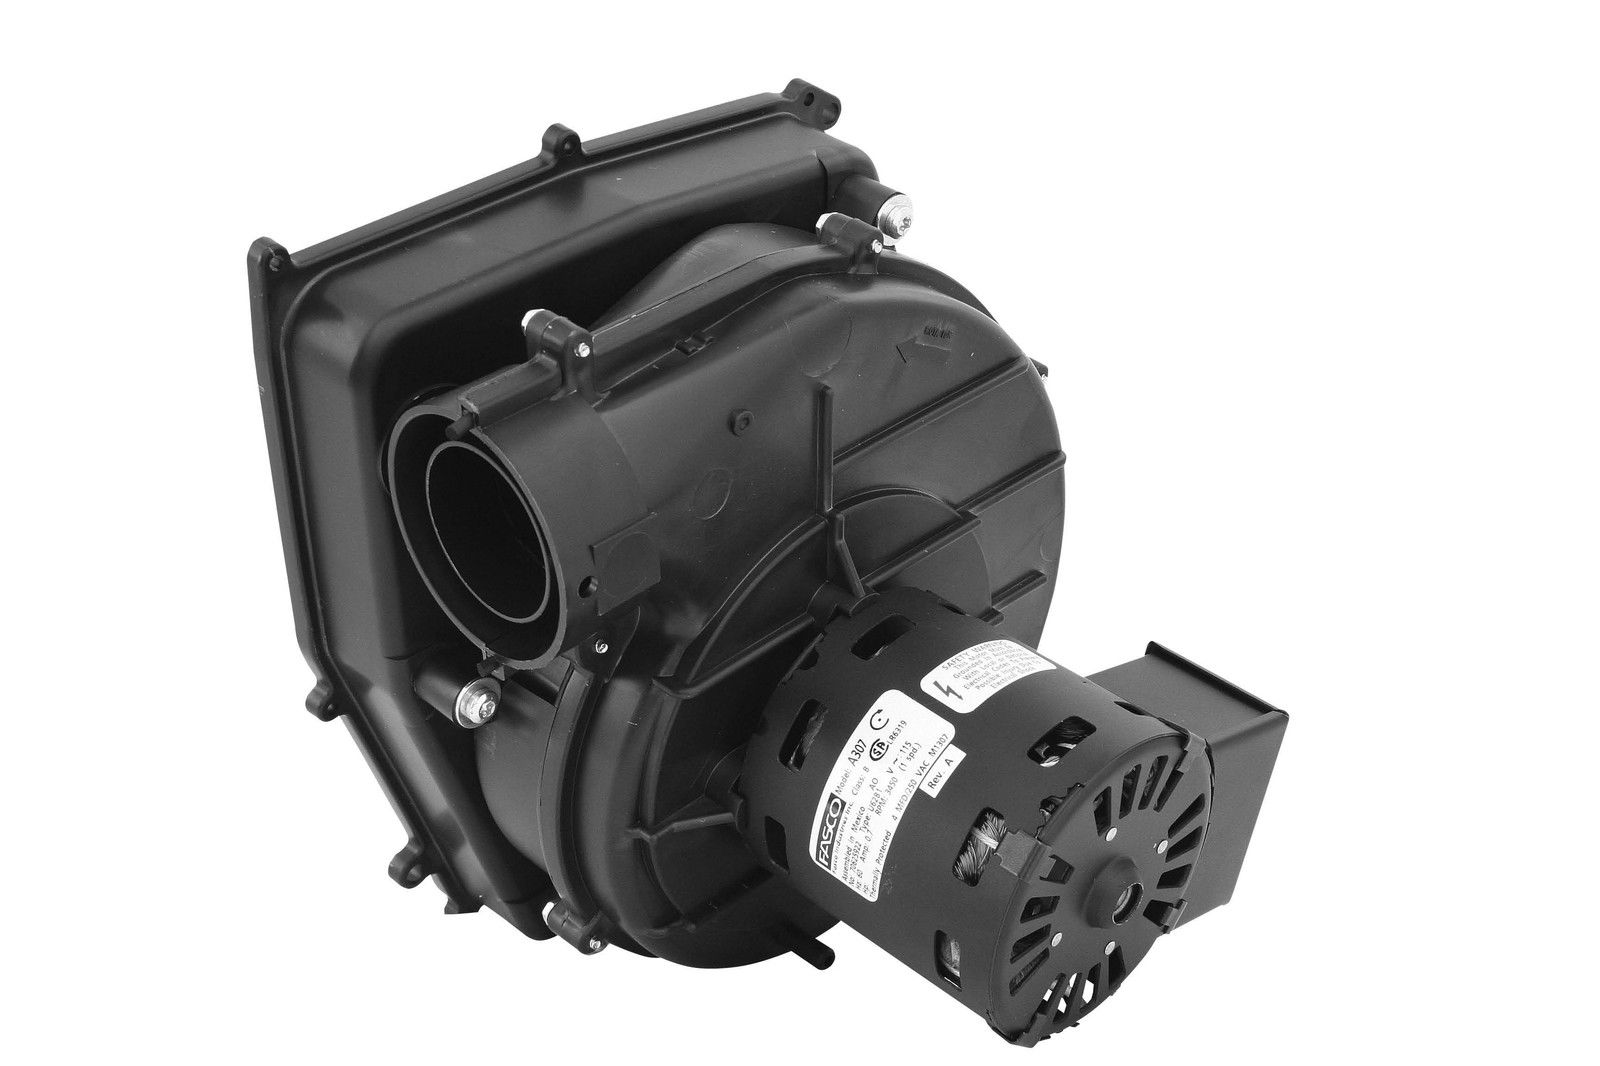 A307 fasco furnace blower motor for icp 7062 5165 7062 for Oil for blower motor